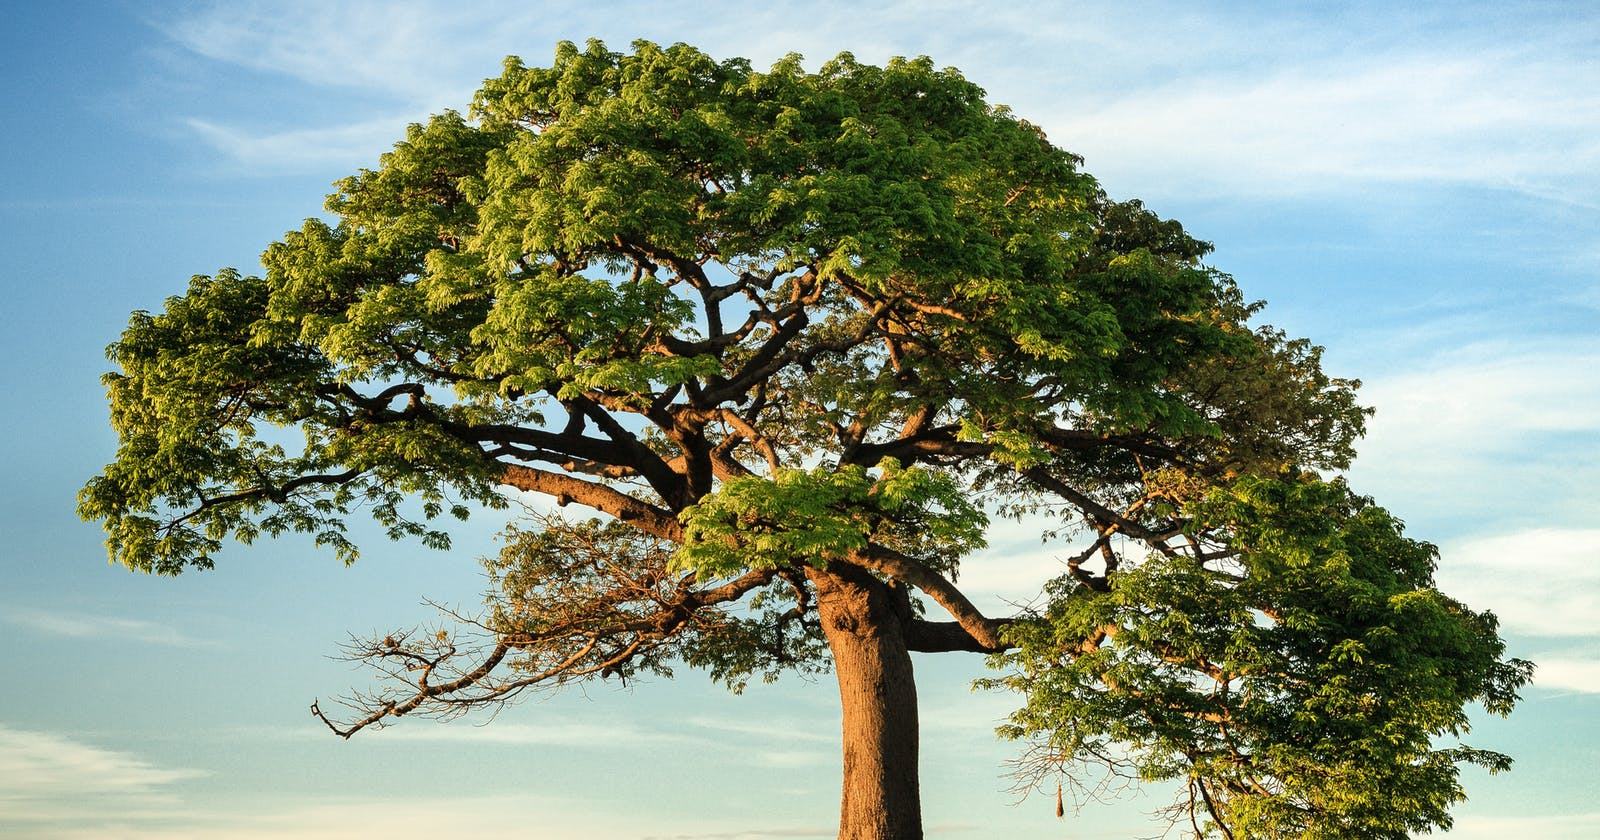 Tree data structure in JavaScript